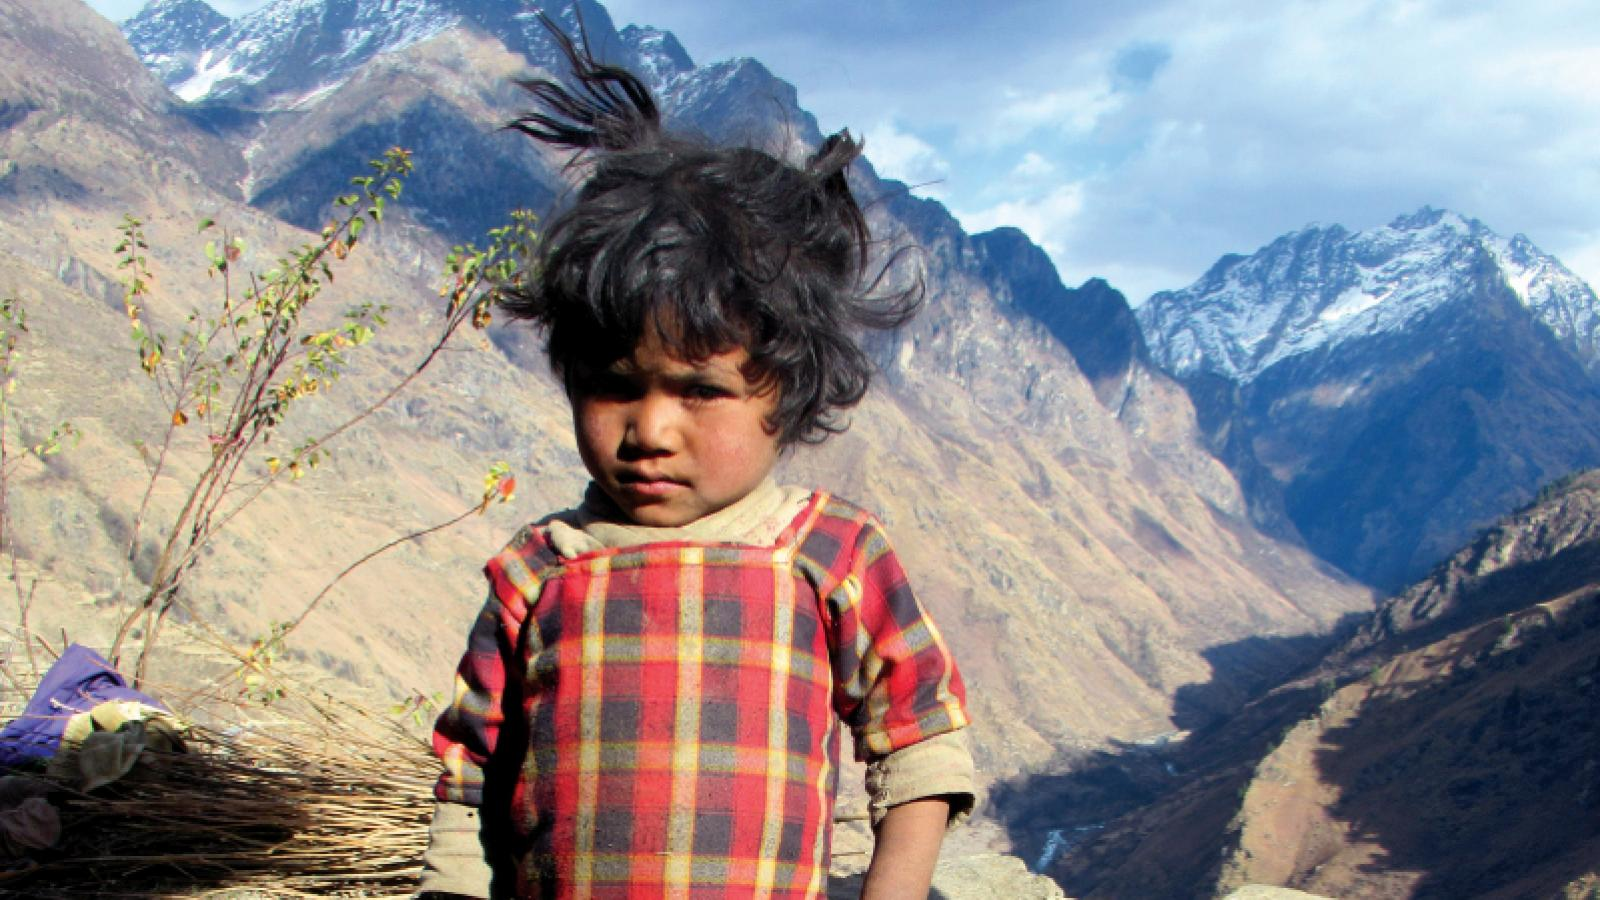 Pabitra's daughter is smaller than average and has cognitive difficulties, most likely because she did not get enough nutrition as a baby. Photo: Foto: Nirmal Bista, HEAD Nepal